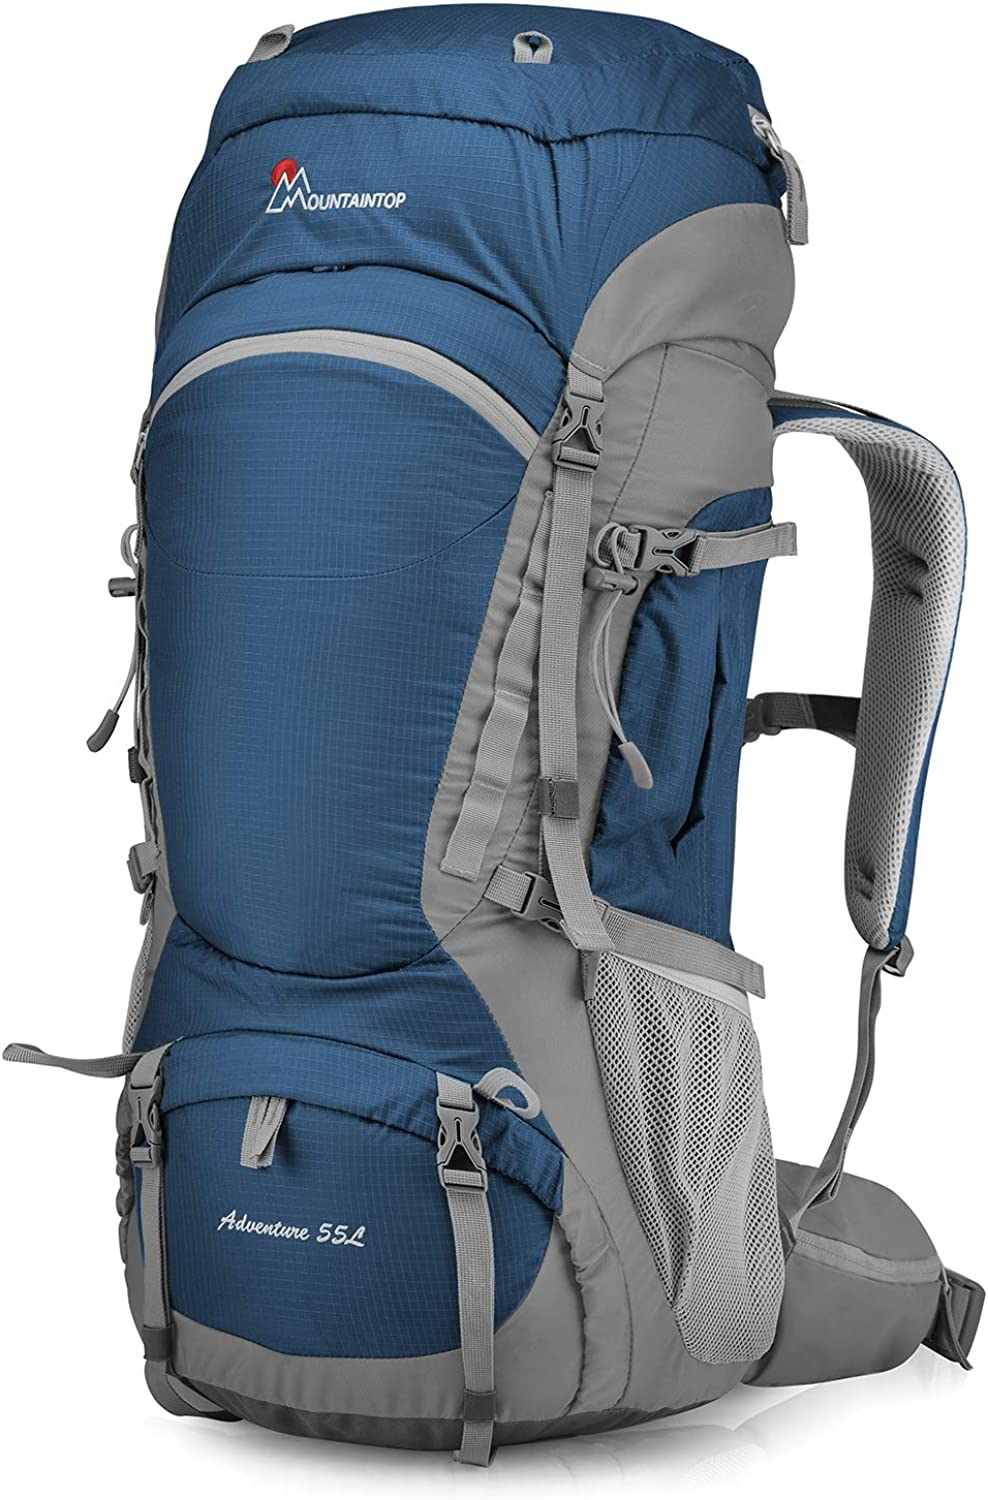 Mountaintop Backpack With Rain Cover